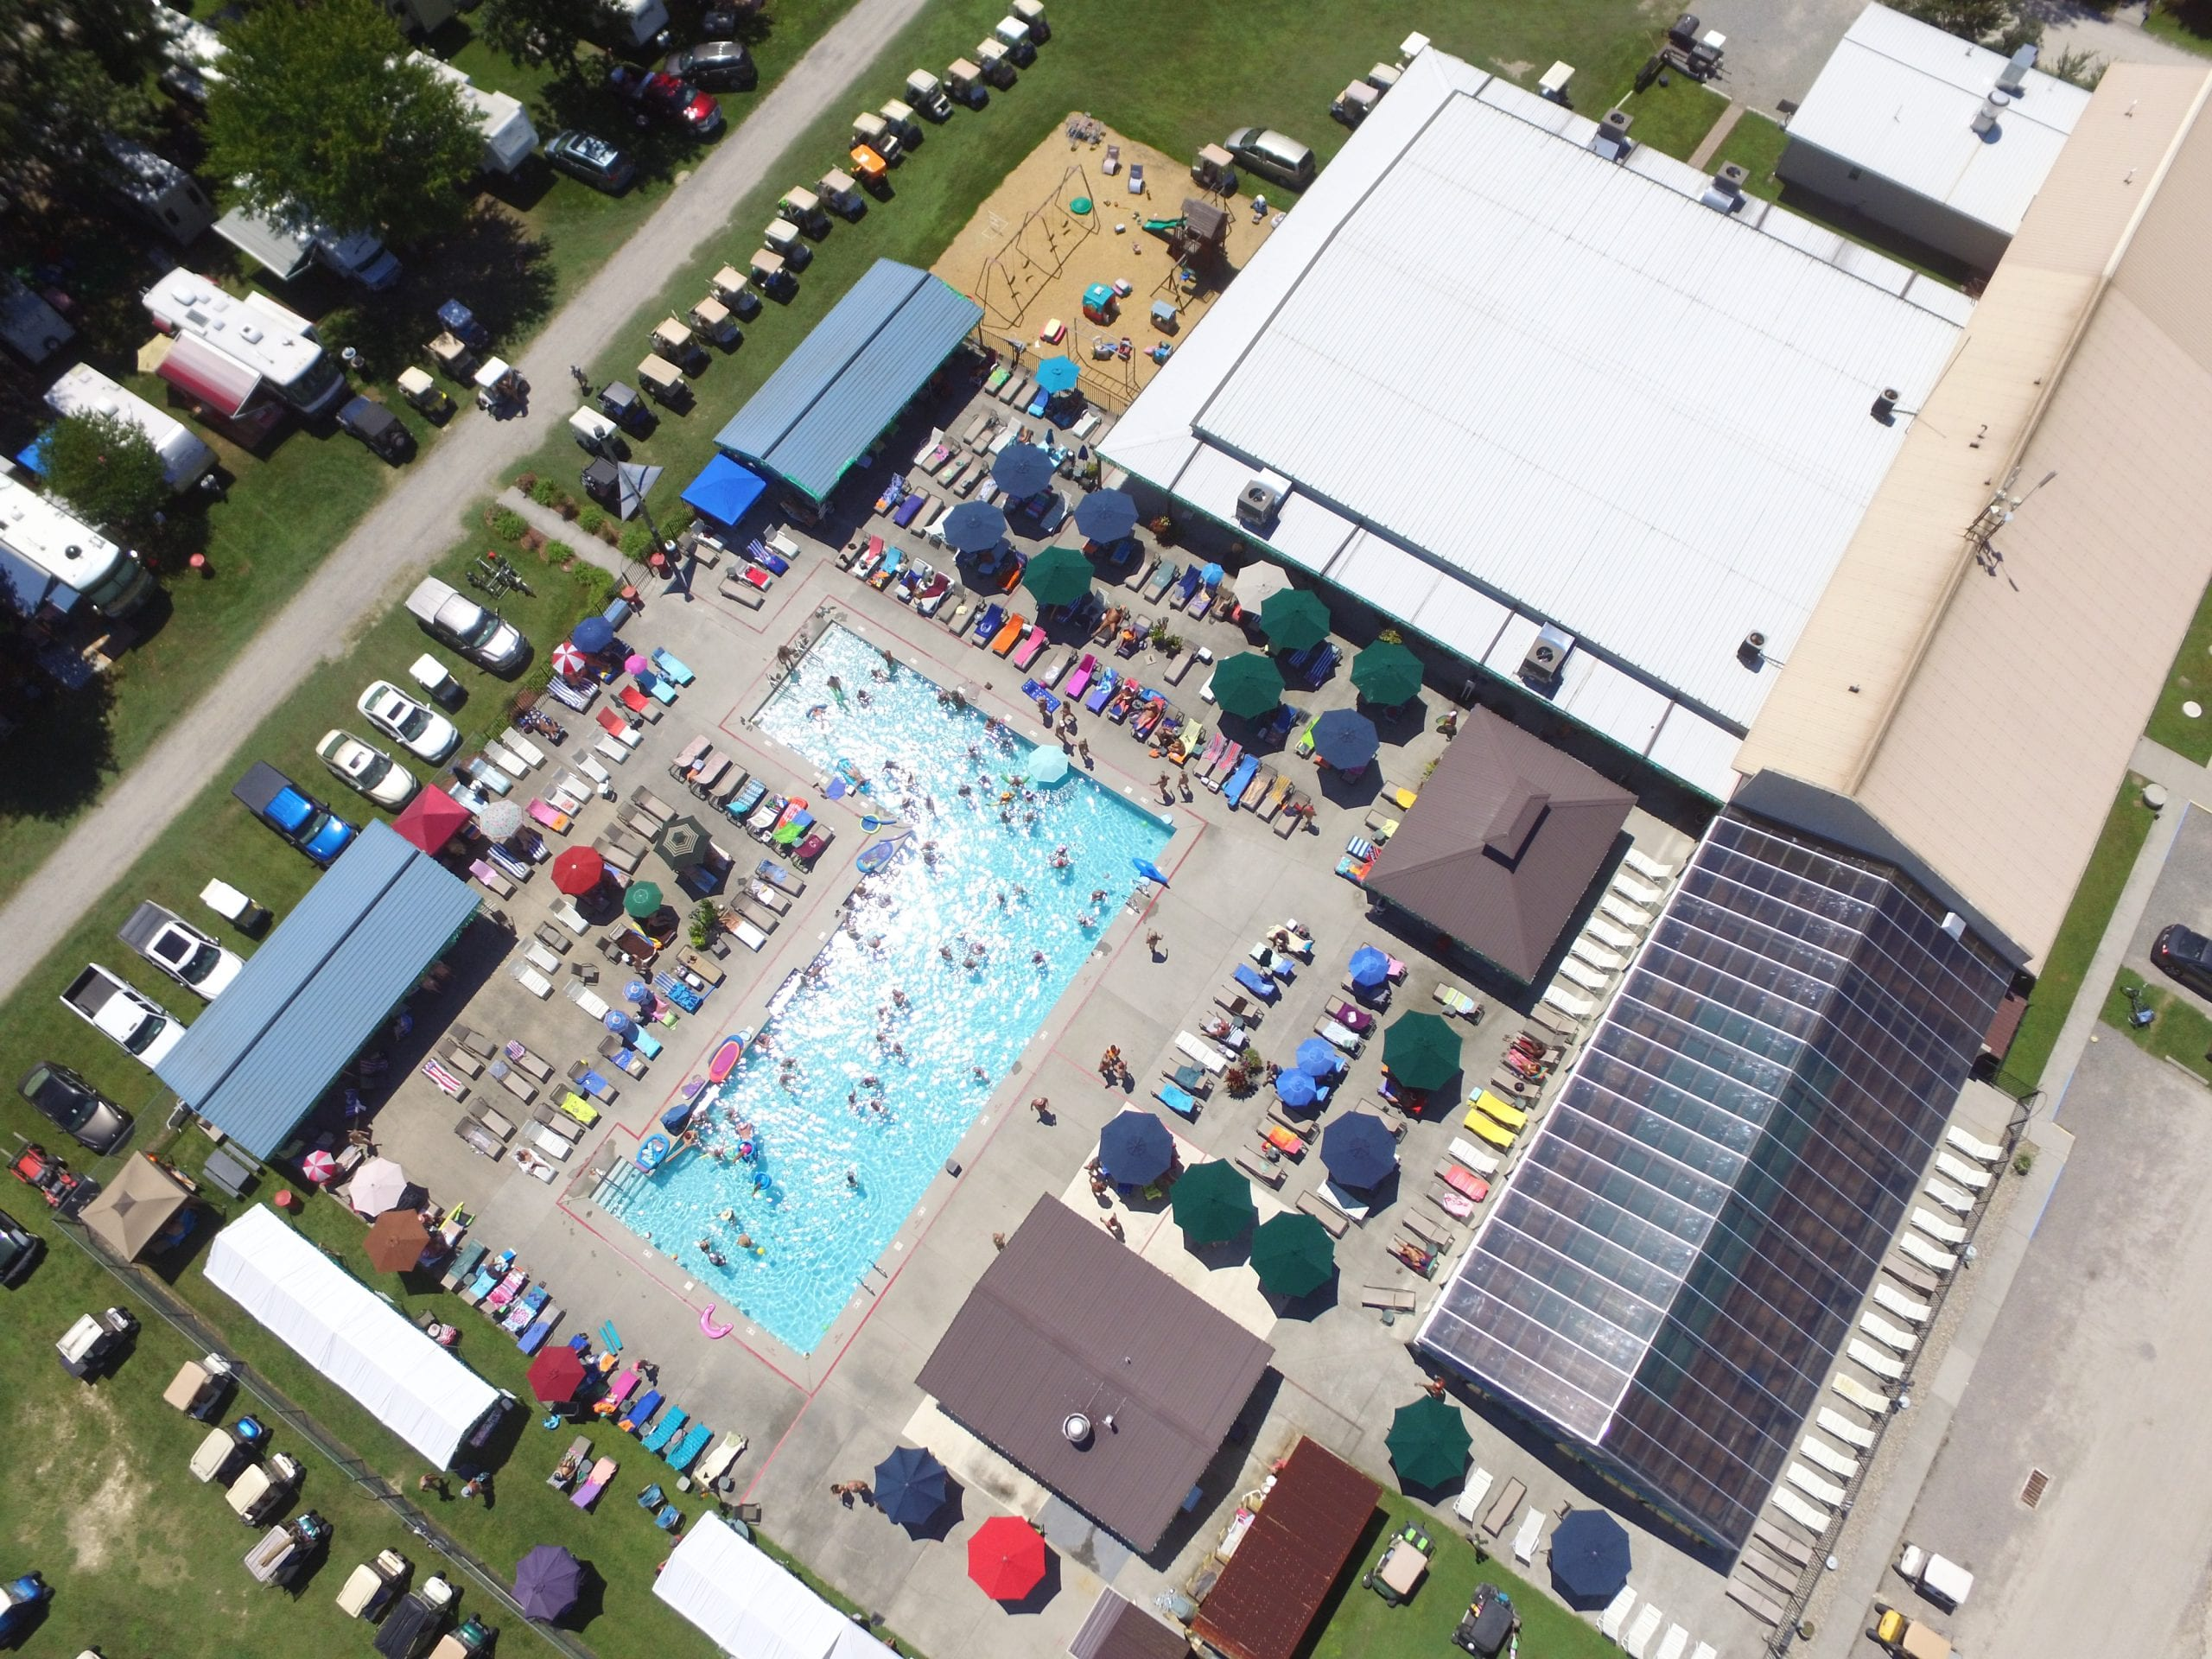 Overhead view of Pool Complex